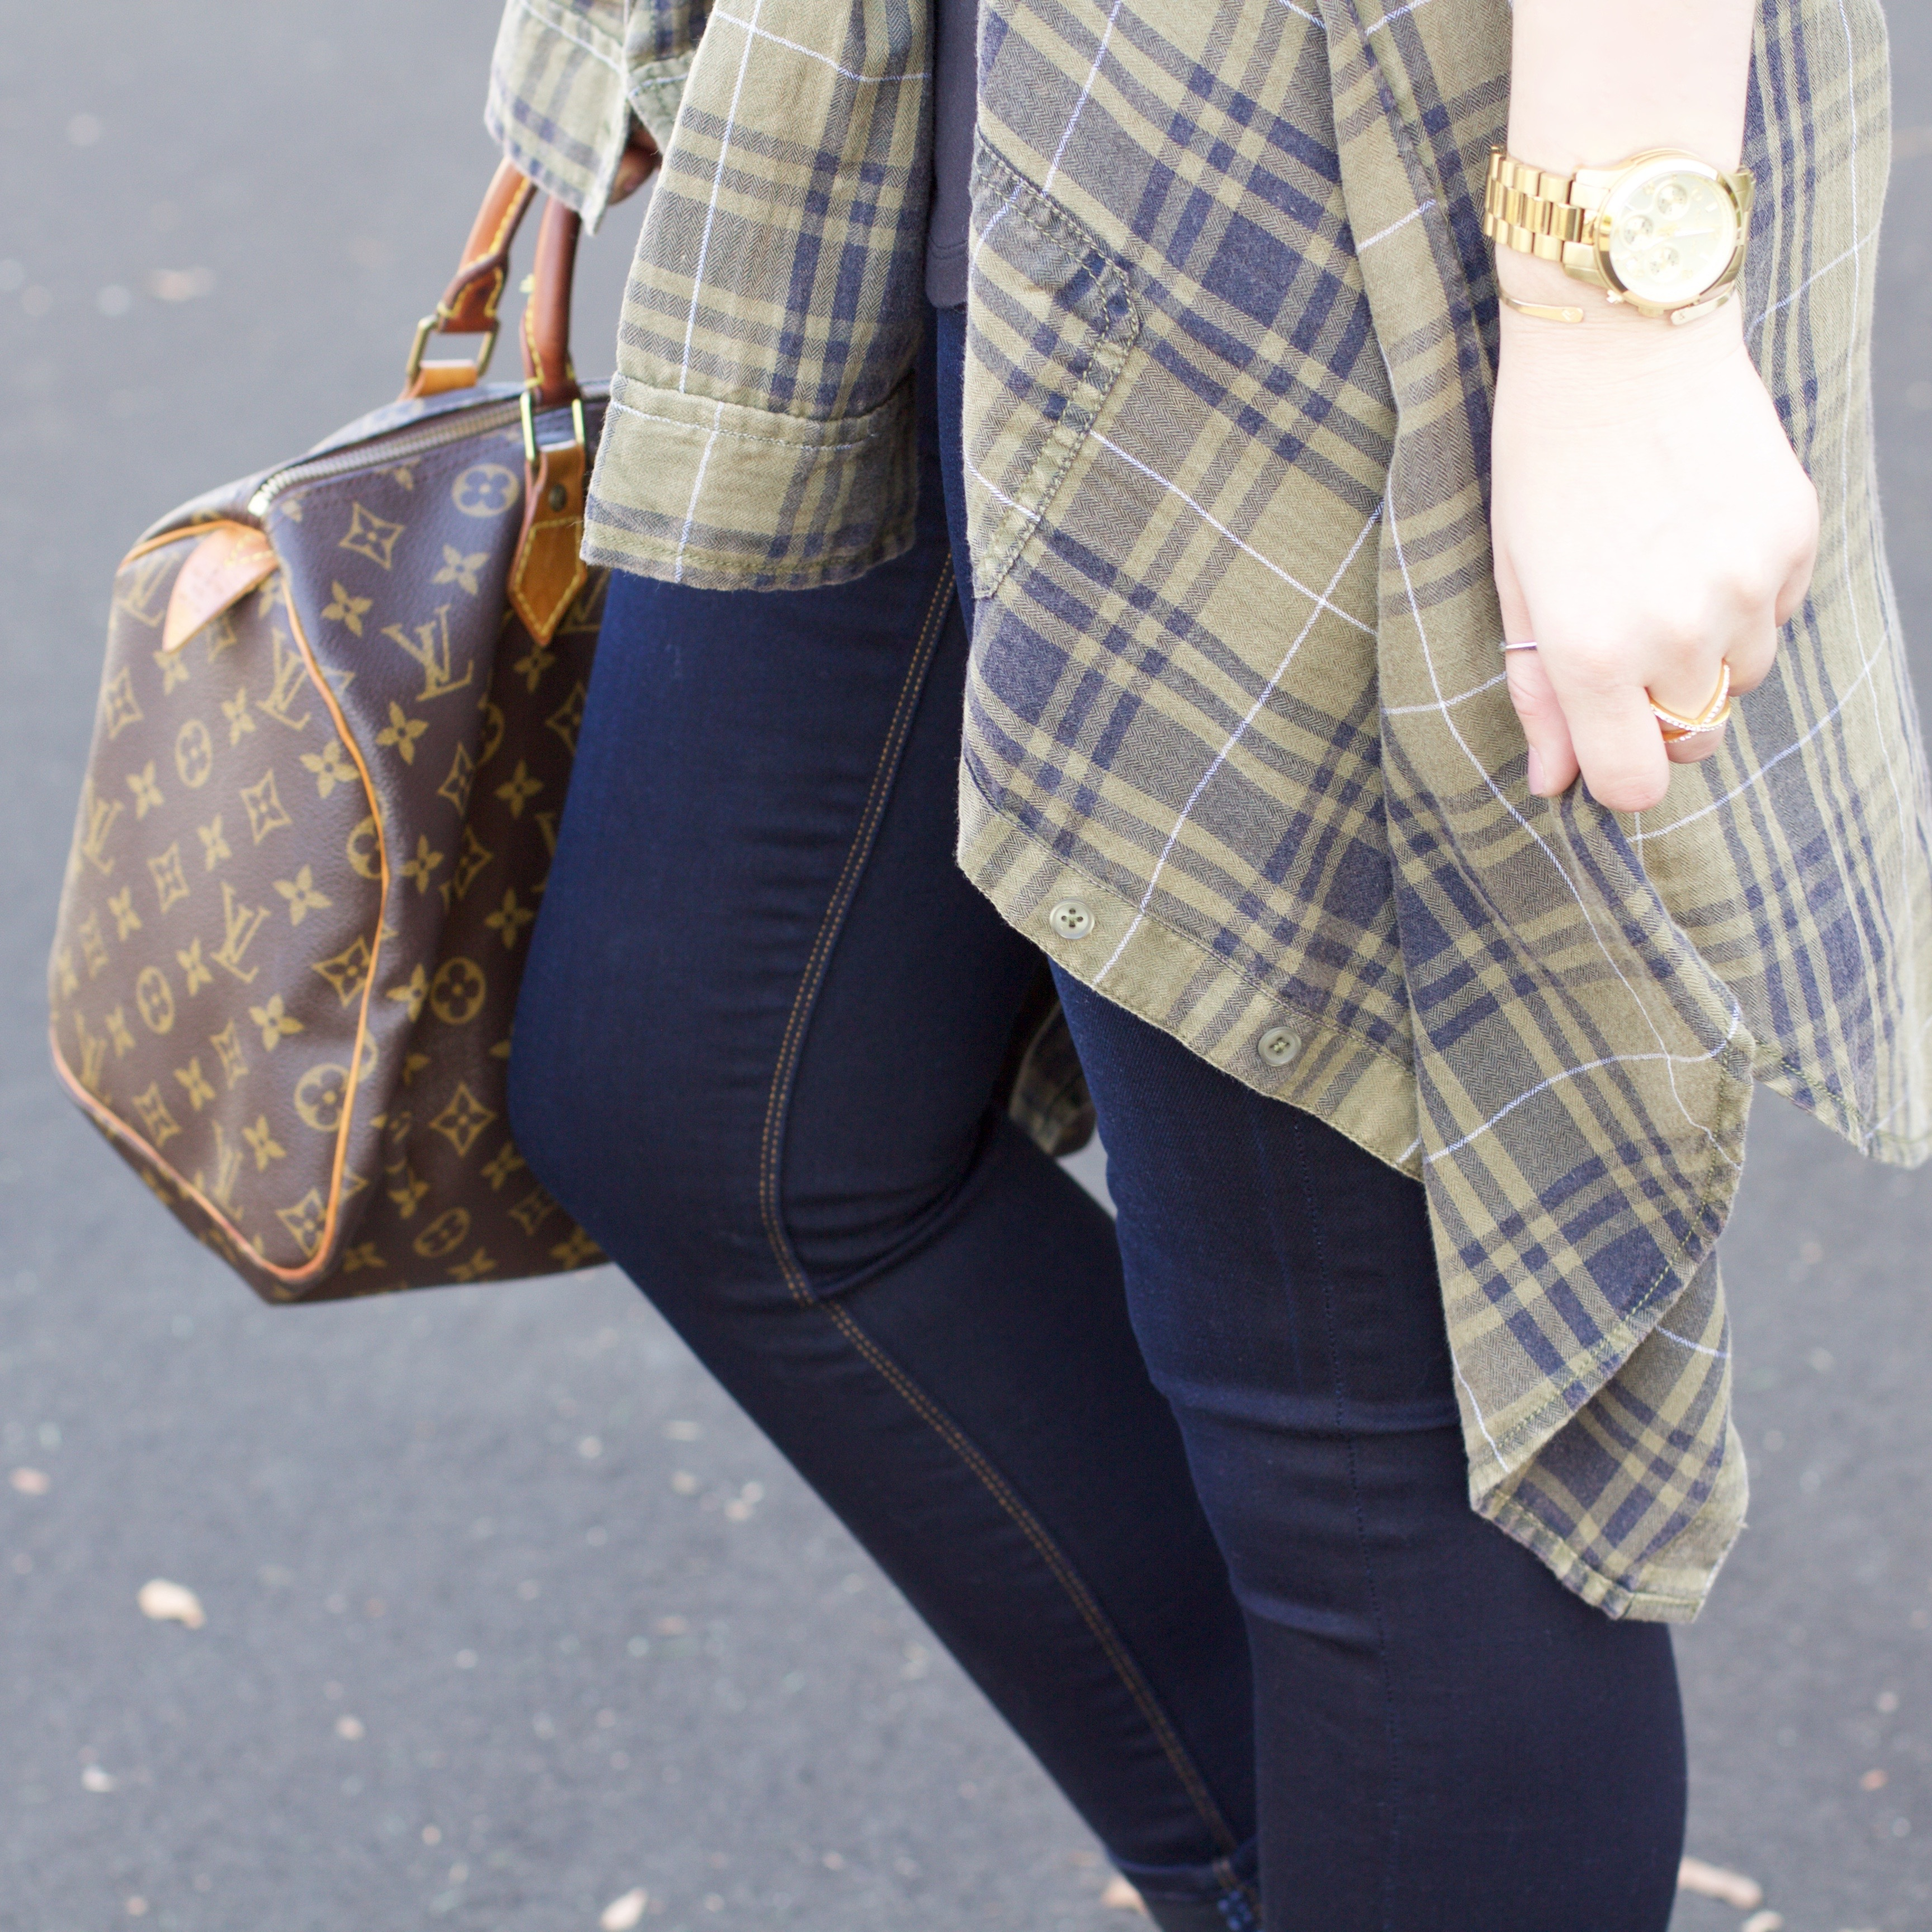 Nordstrom BP flannel - My Styled Life